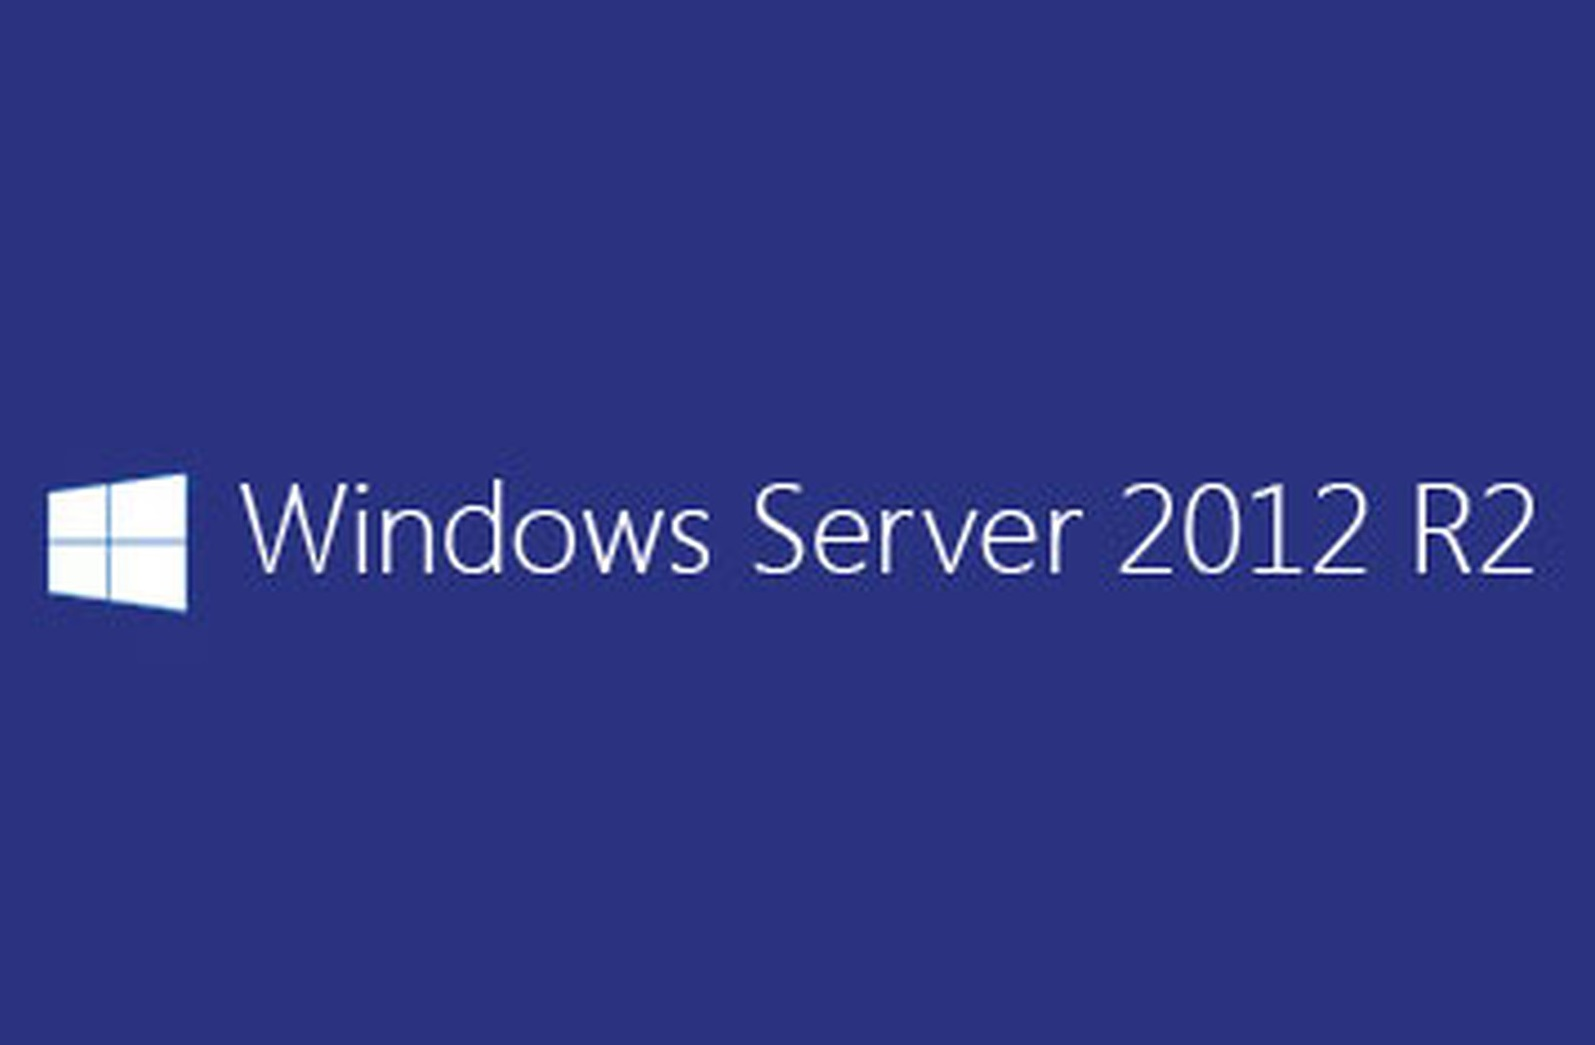 Windows Server 2012 R2 Free Download